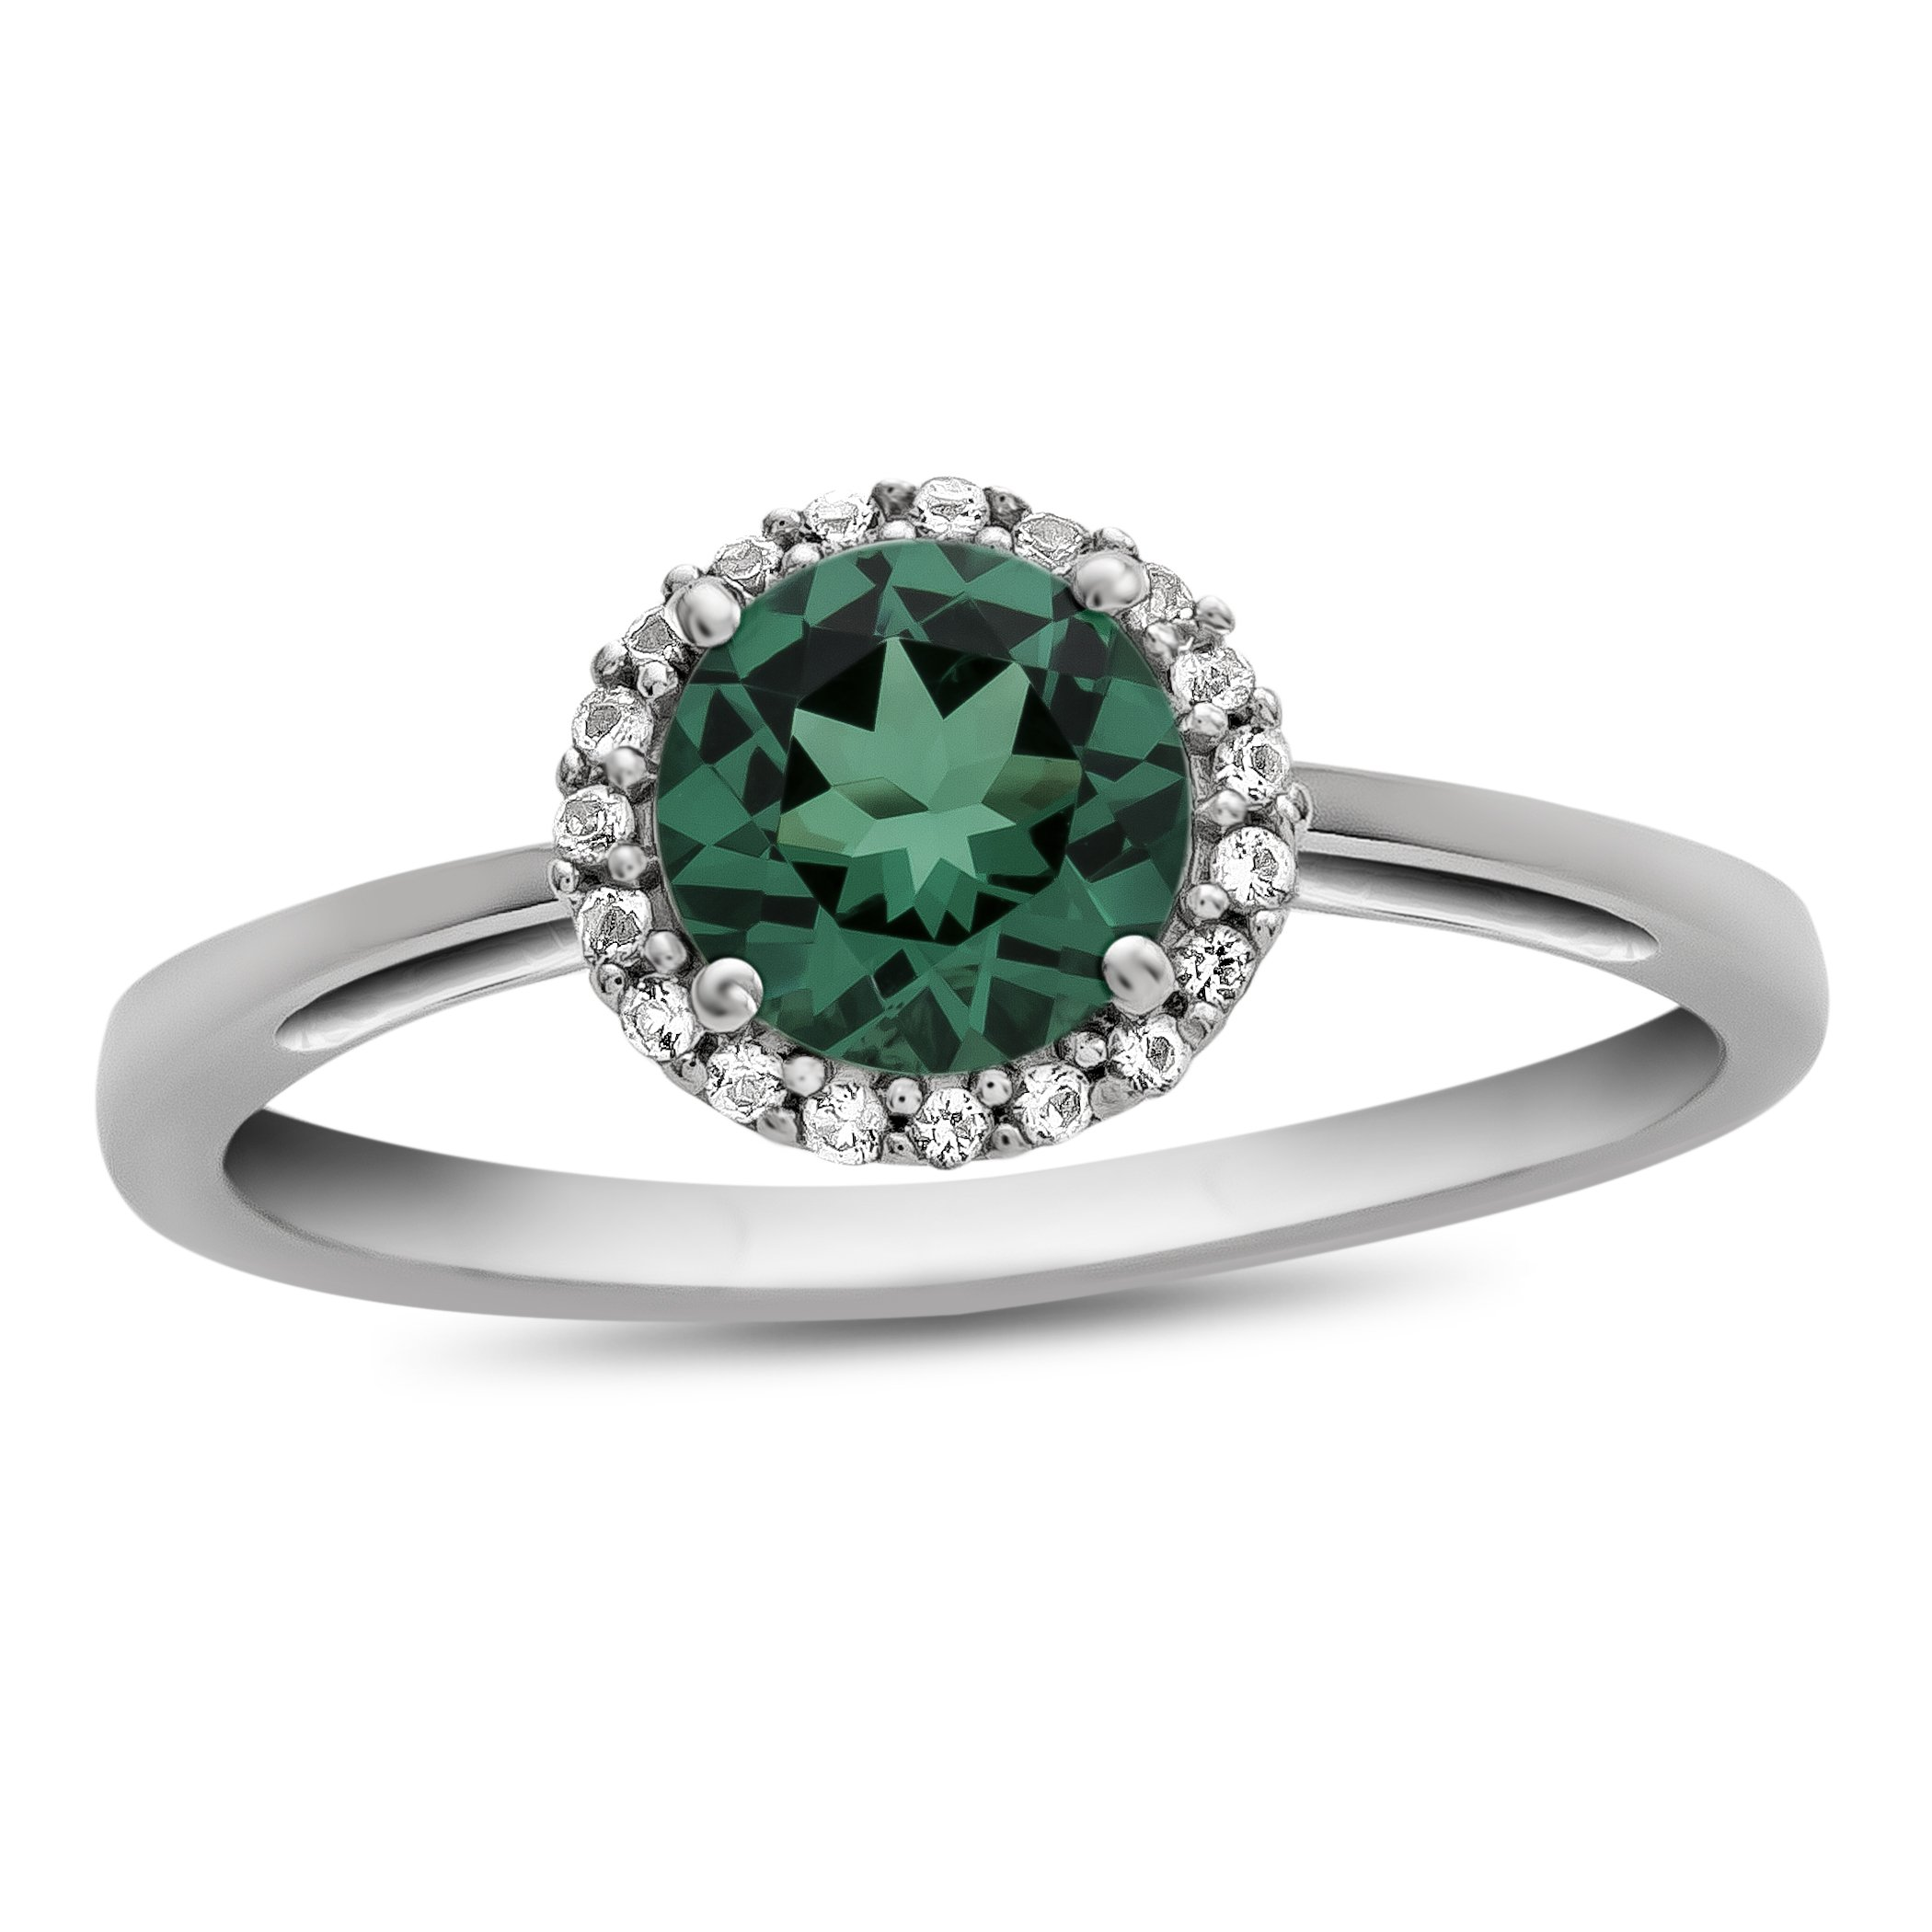 10k White Gold 6mm Round Simulated Emerald with White Topaz accent stones Halo Ring Size 6